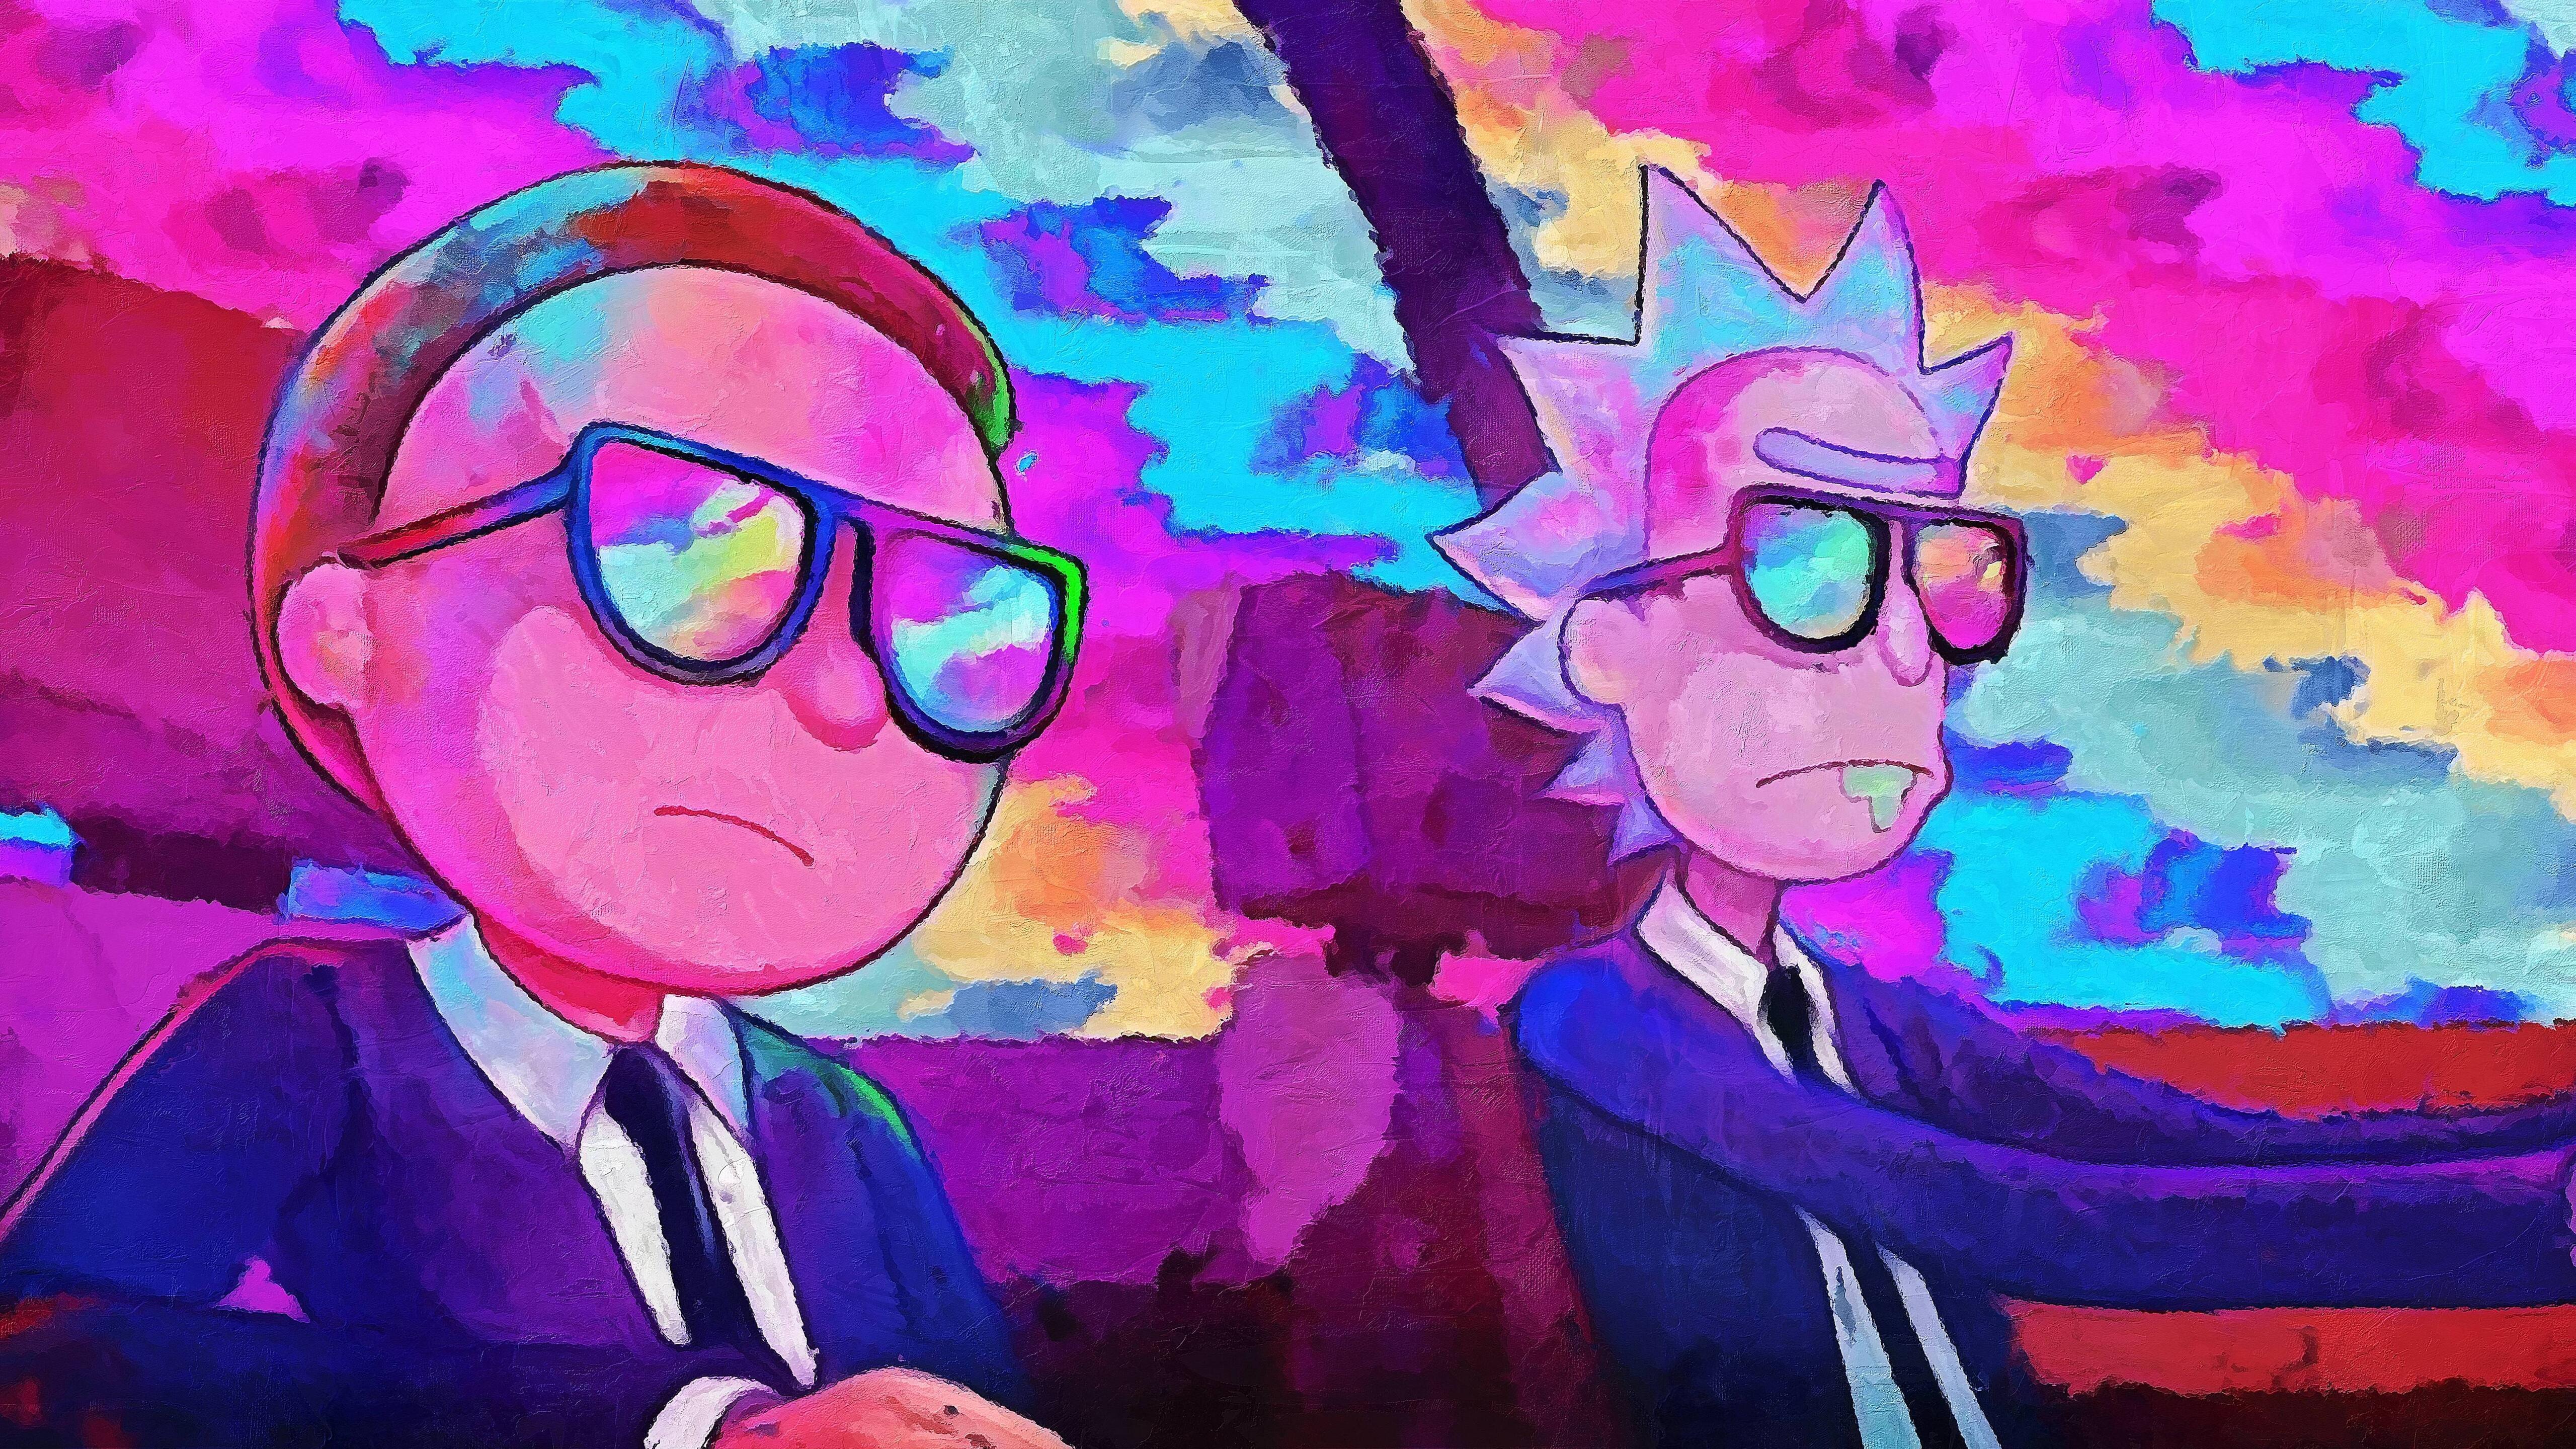 5120x2880 Rick And Morty 5k Artwork 5k Hd 4k Wallpapers Images